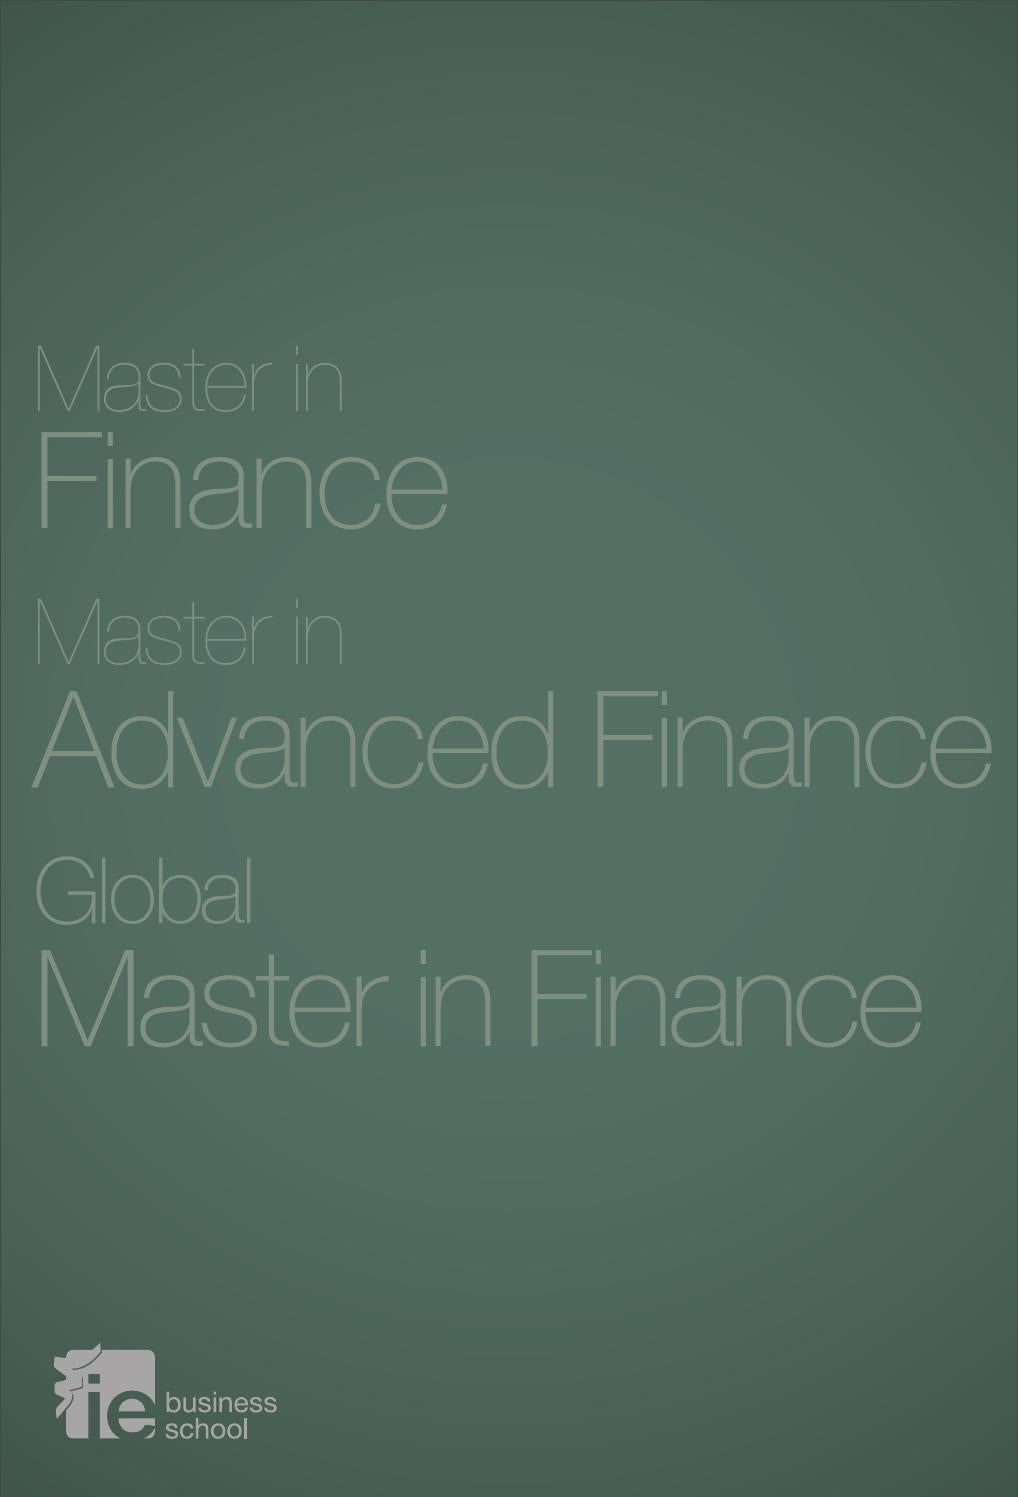 Master In Finance, Master In Advanced Finance, Global. Denver Colleges And Universities. Las Vegas Roofing Companies Buy Vps Server. Helping The Poor And Needy How Does Seo Work. Substance Abuse Evaluation Michigan. Gator Cx Utility Vehicle Office Rental Sydney. International Toll Free Conference Call Services. Time Warner Cables Phone Number. Nebraska Indian Community College